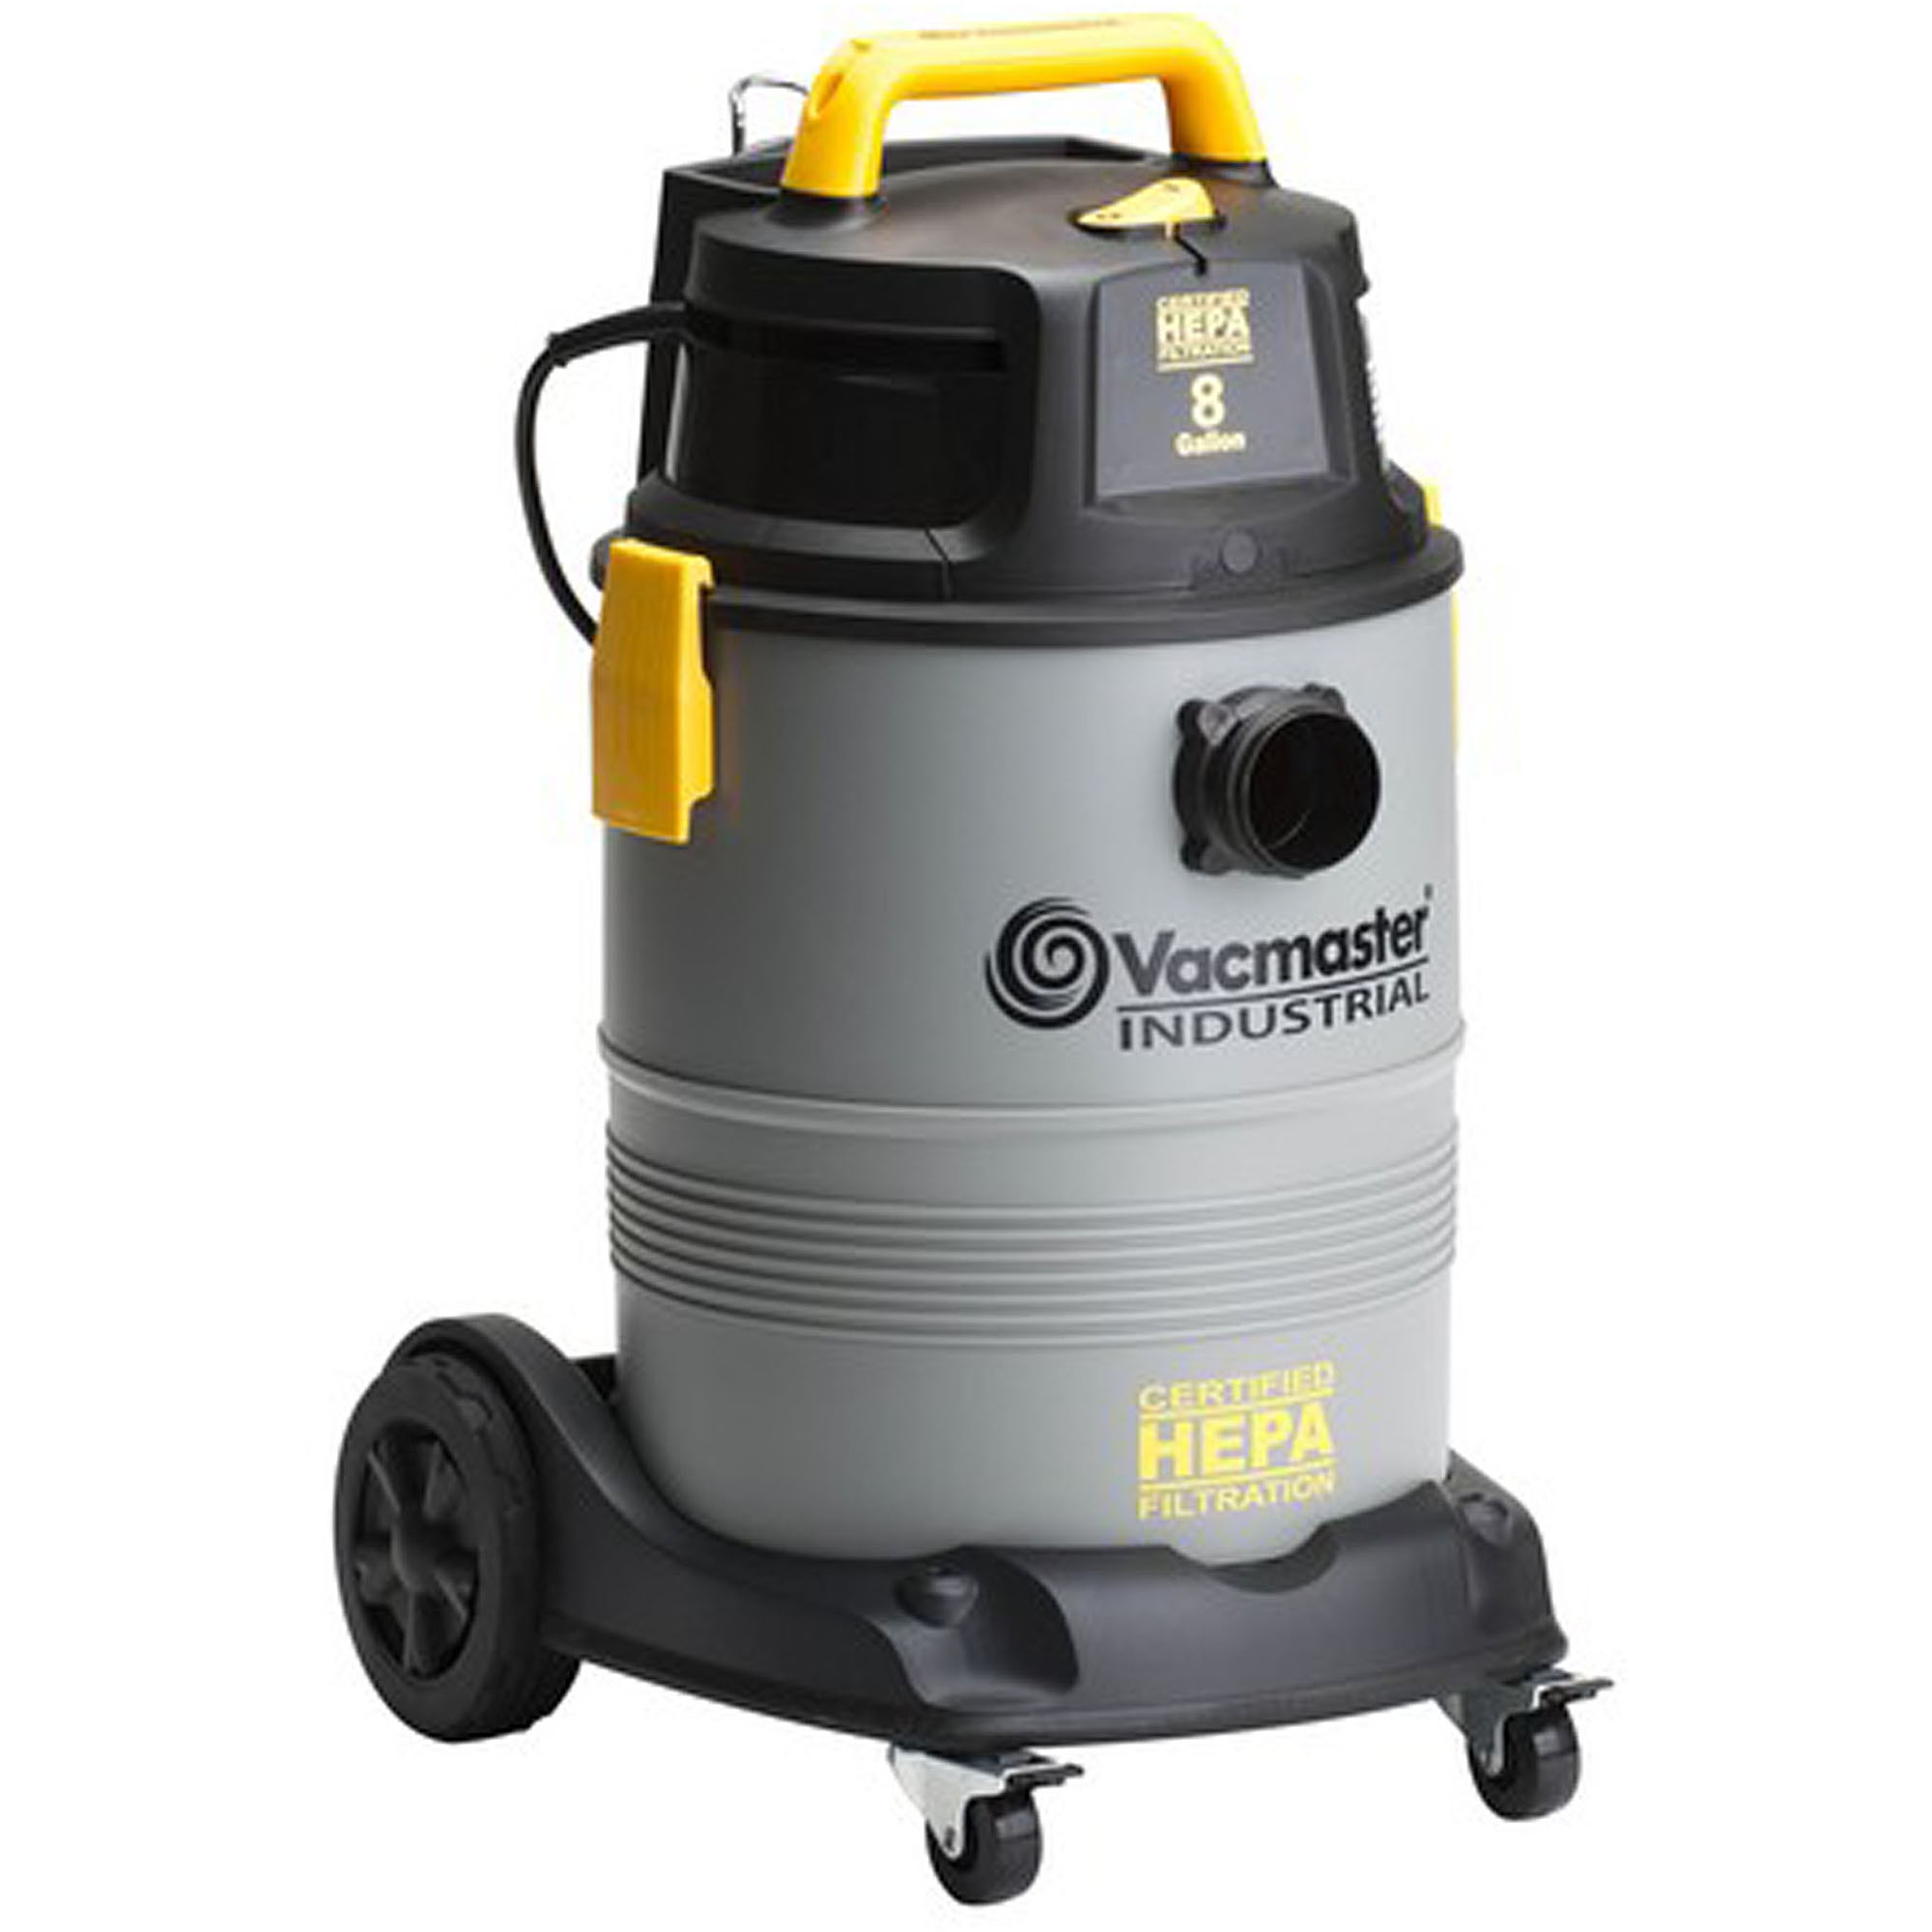 Vacmaster 8 Gallon HEPA Vac with 2 Stage Motor, VK811PH